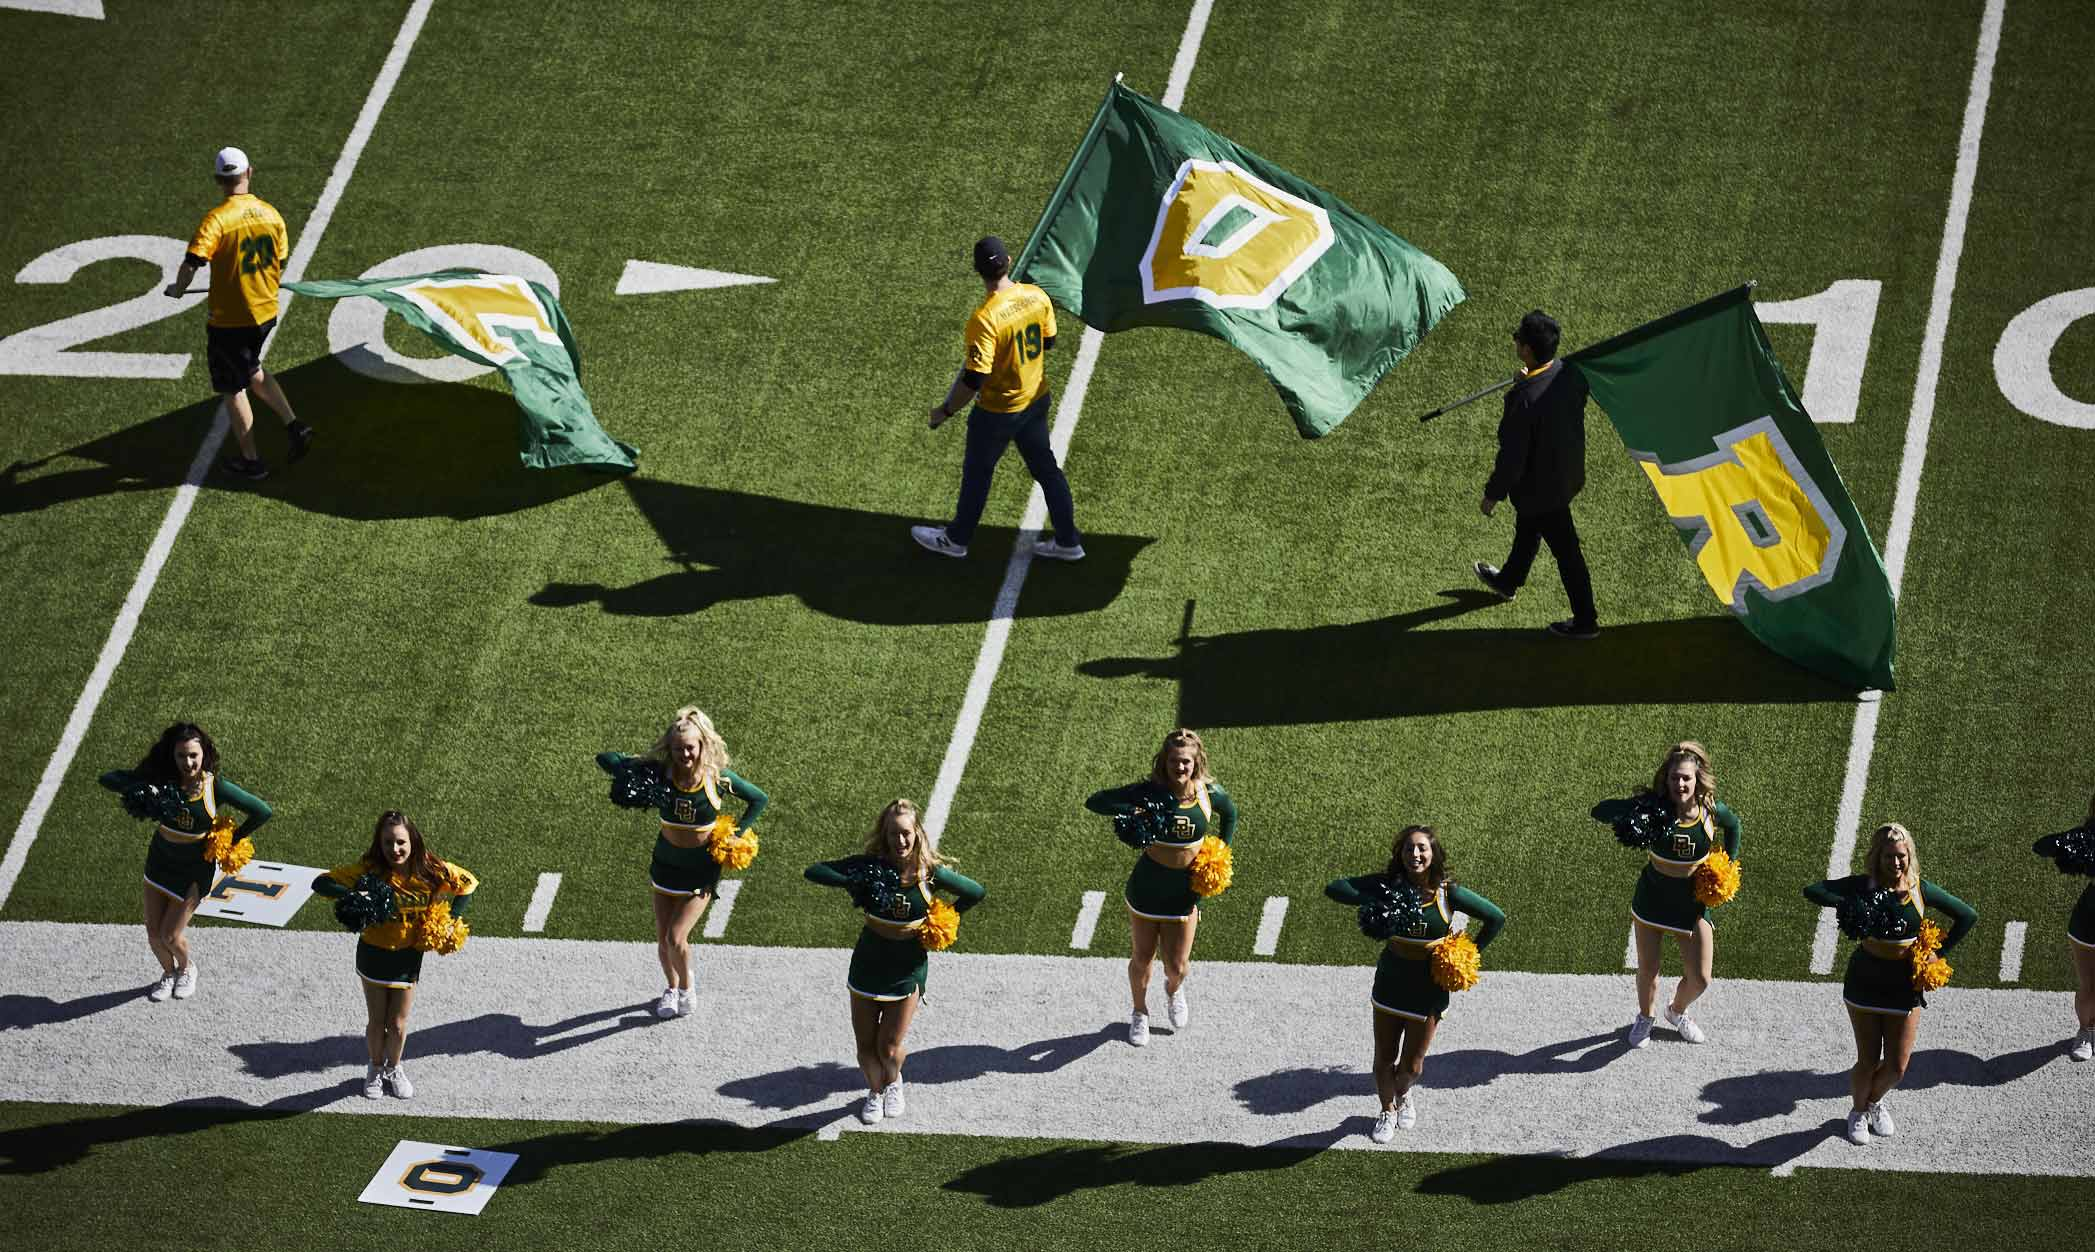 Baylor_Game-Day_057